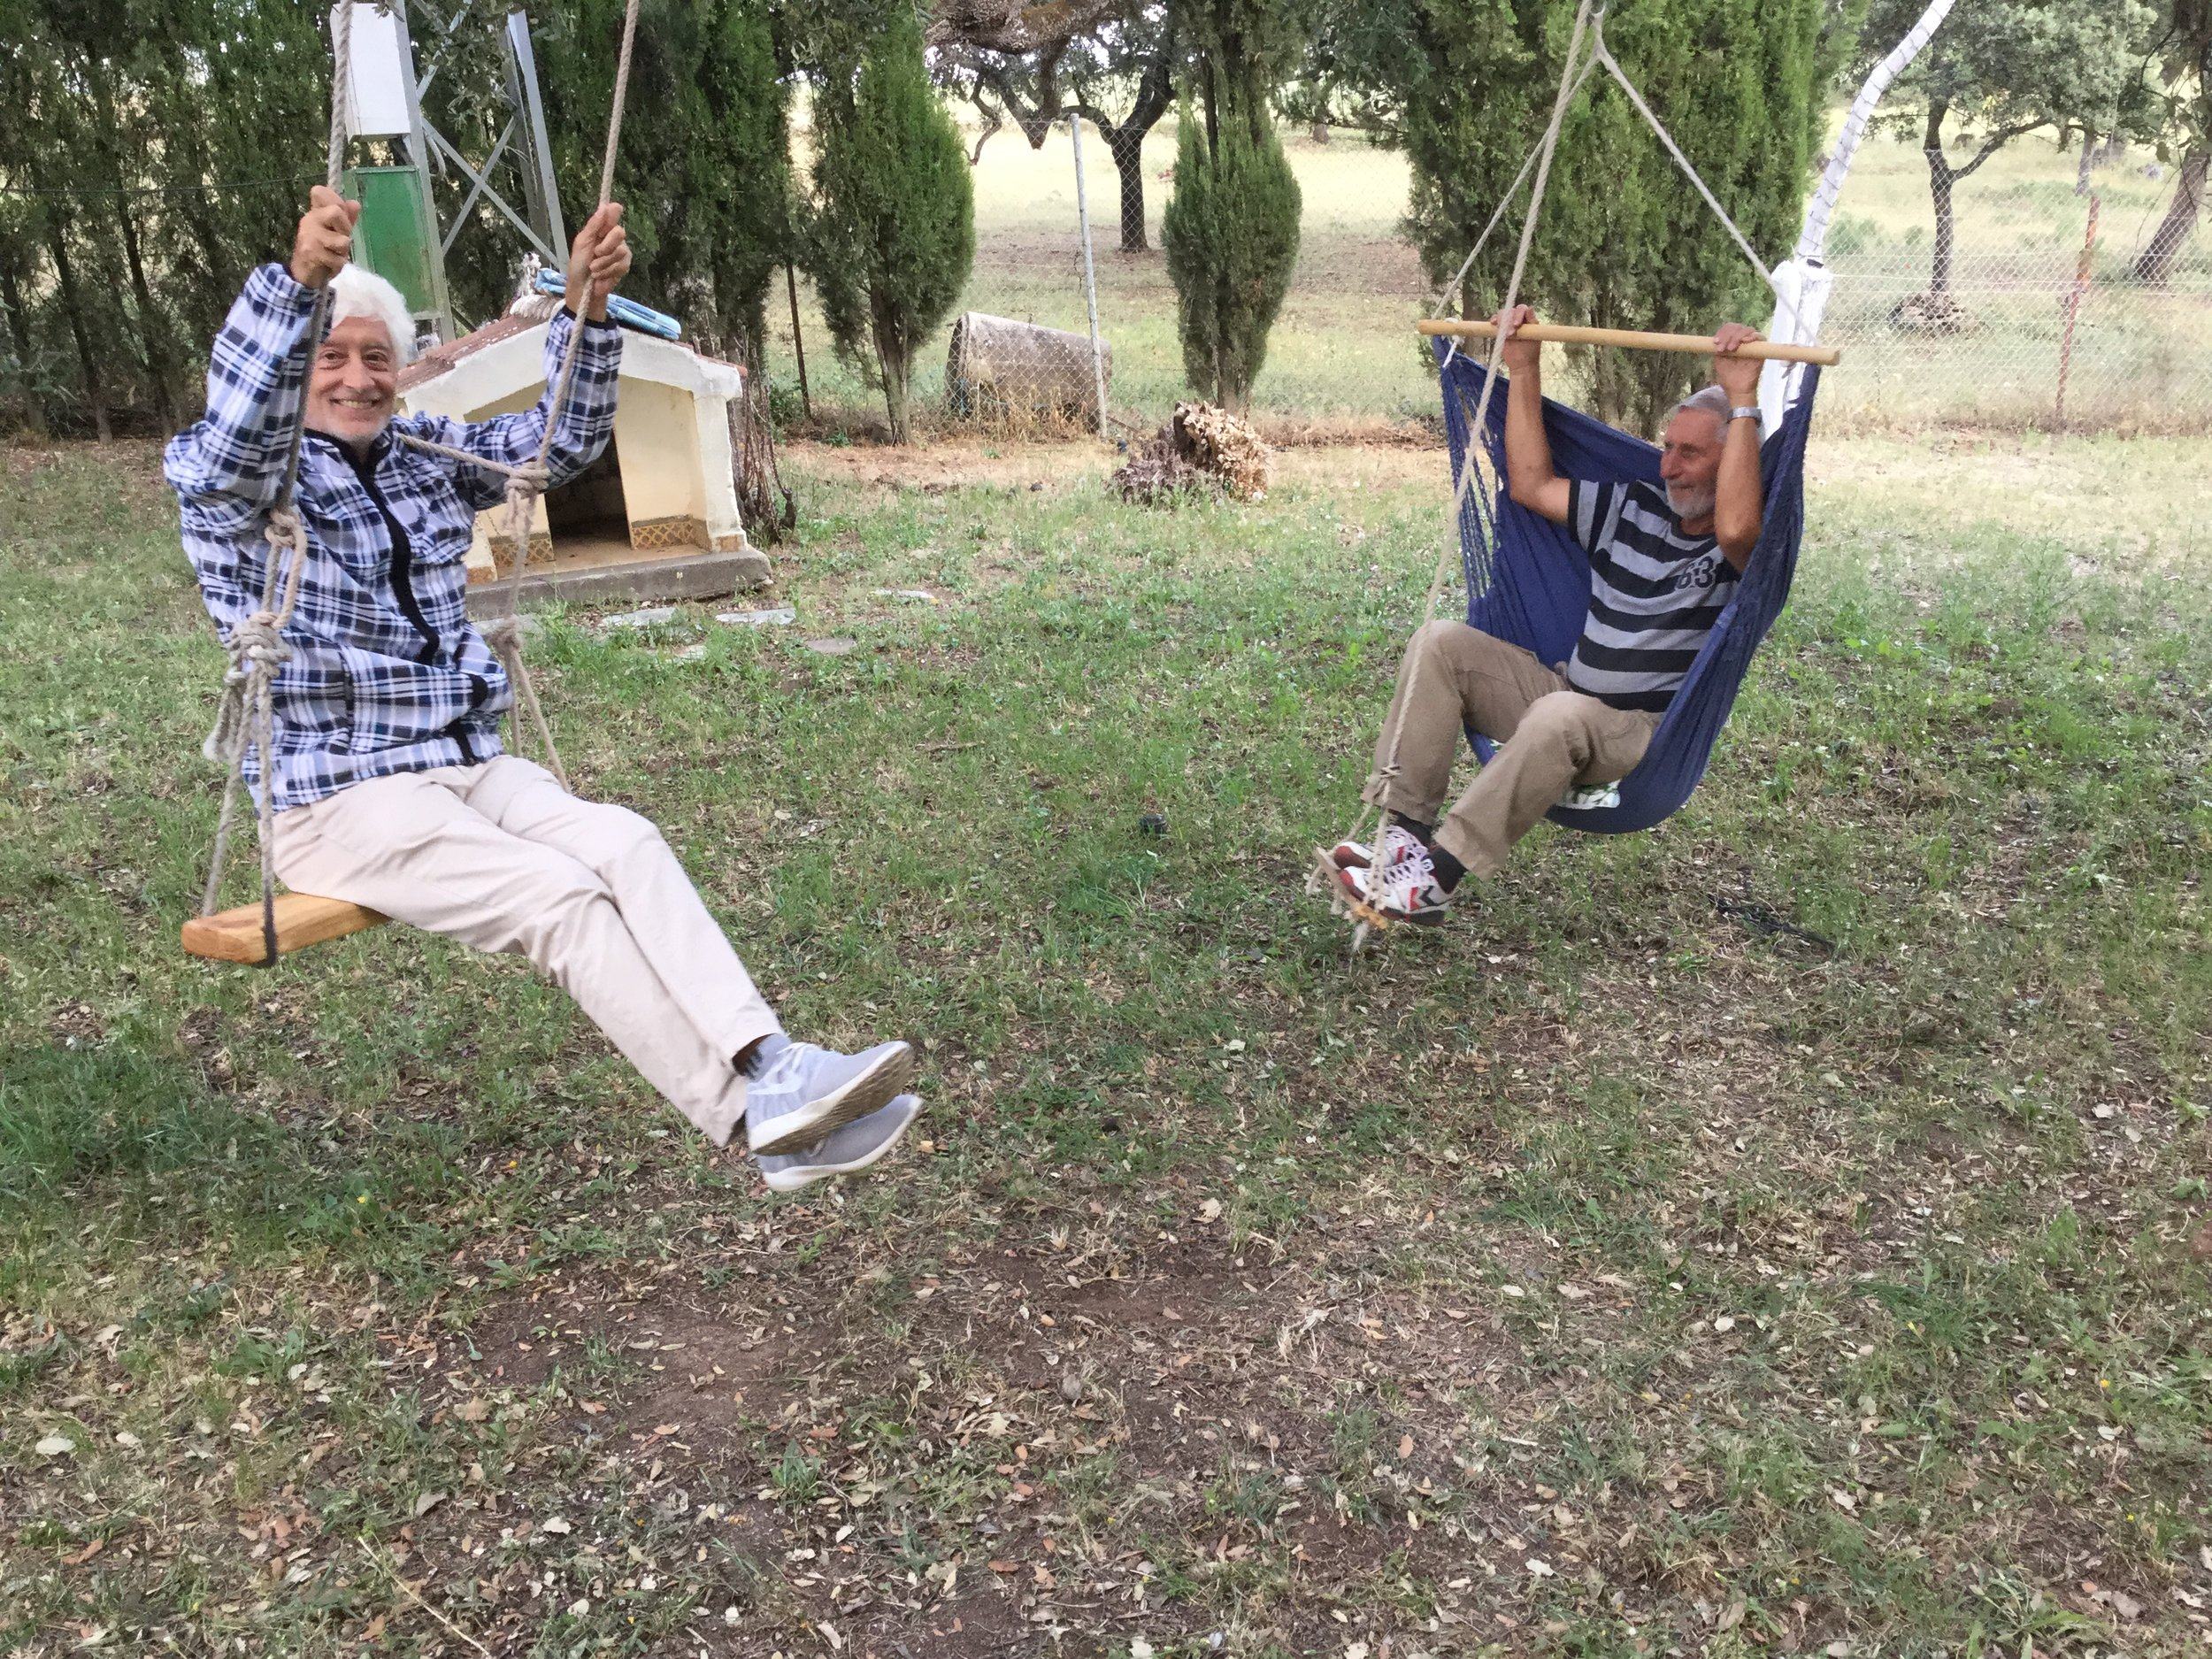 Sandra's sister Manuela is coming to visit in a couple of weeks with her little son Max who is four. Alfred made a swing for his grandson, and Dante is testing it. All worked great!